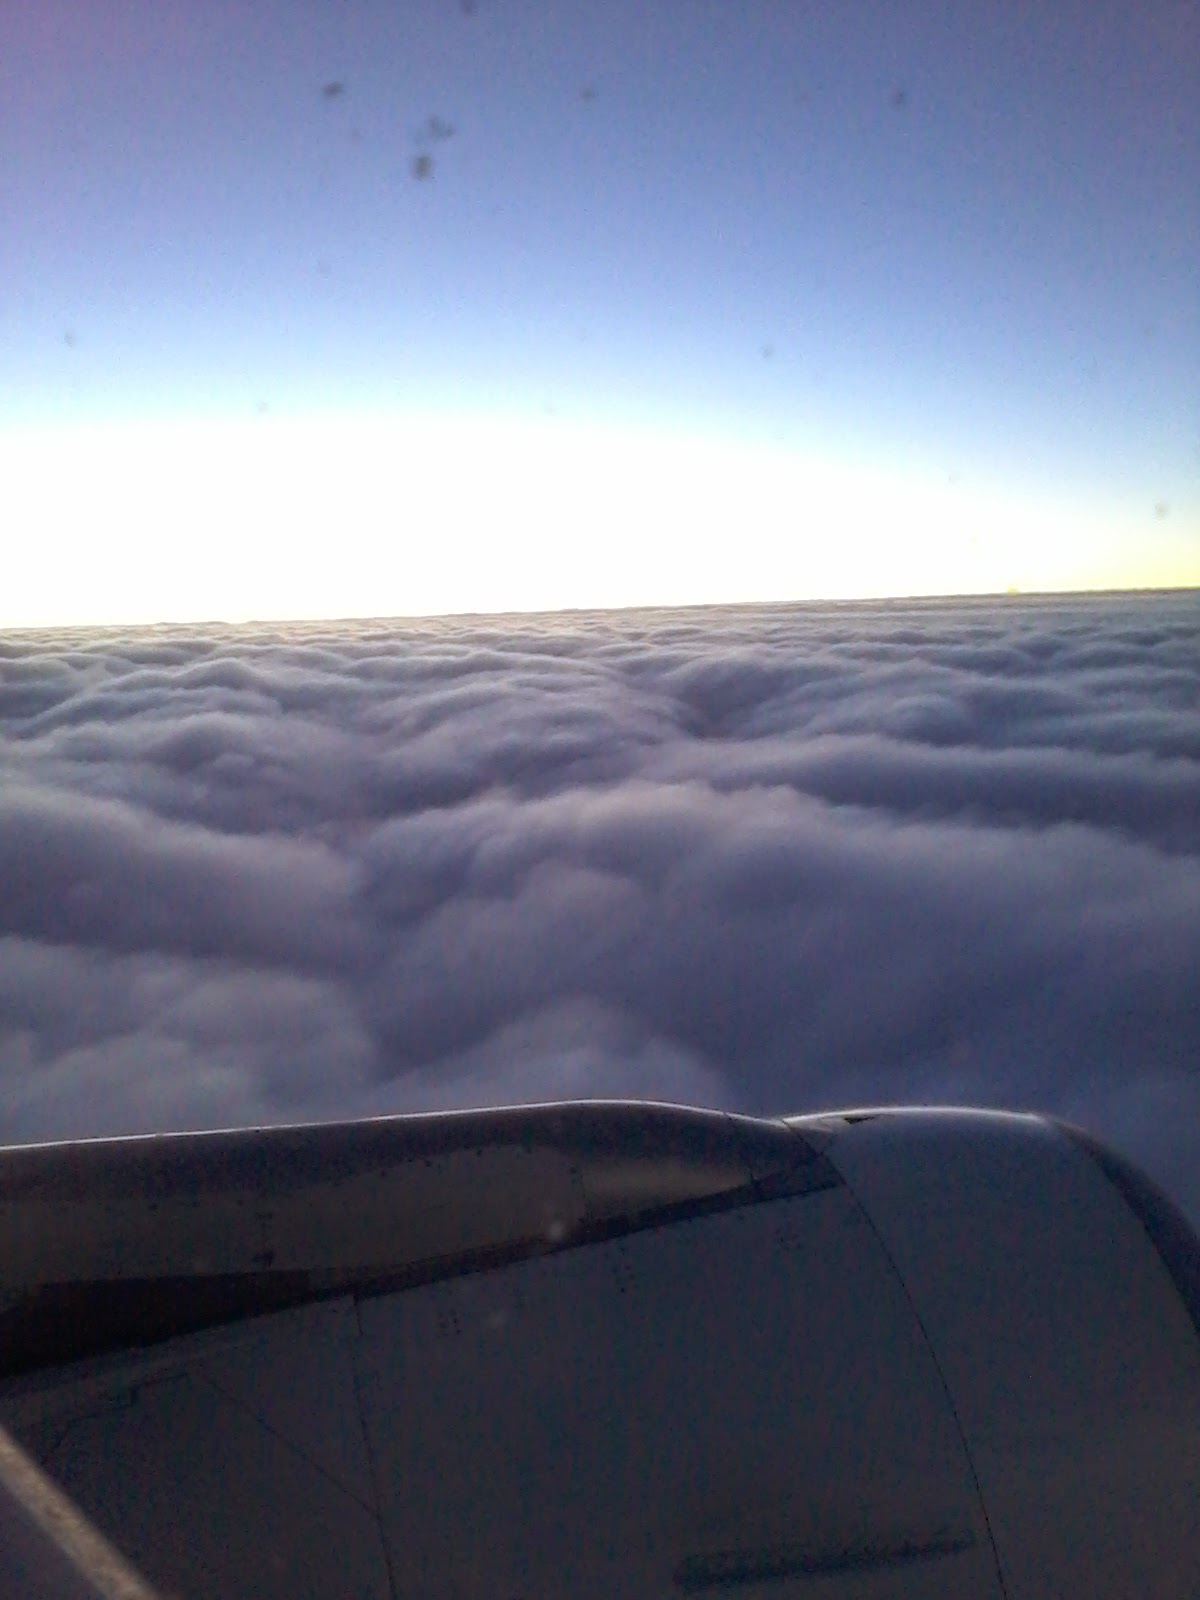 Barely above the clouds